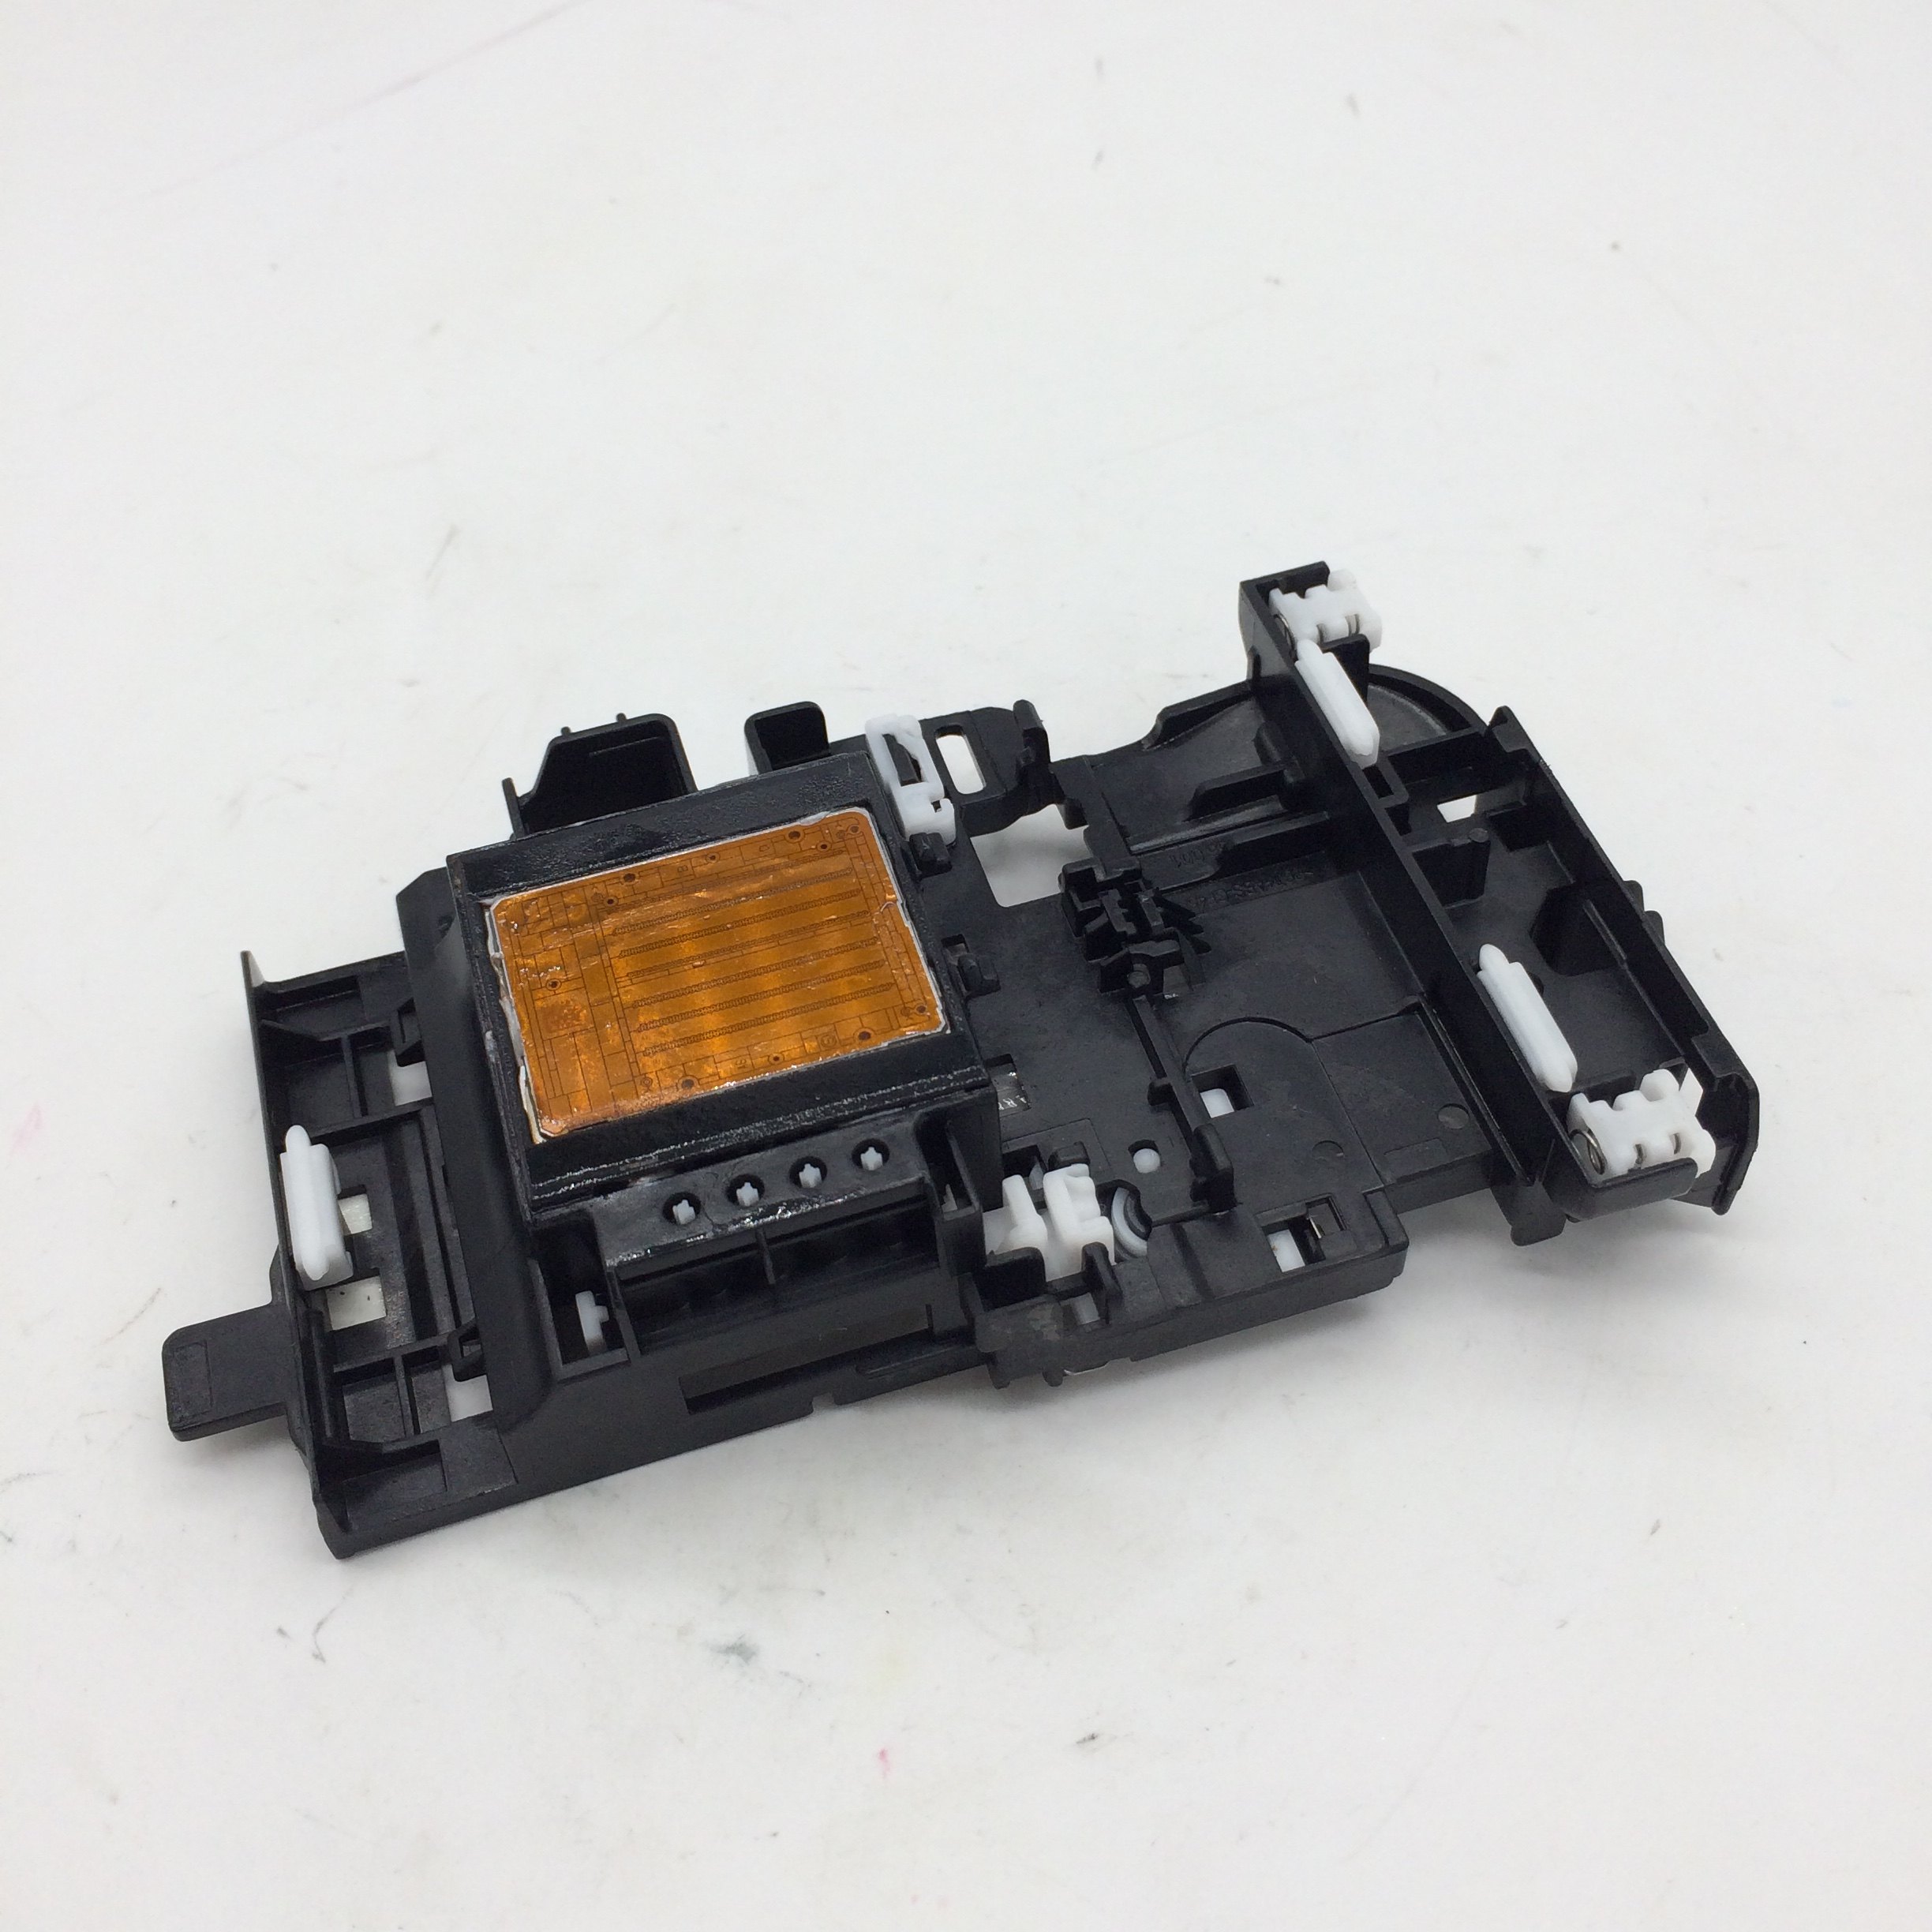 ORIGINAL Printhead Print Head Printer Head For Brother DCP J100 J105 J200 DCP-J152W J152W J152 J205 T300 T500 T700 T800 T500W